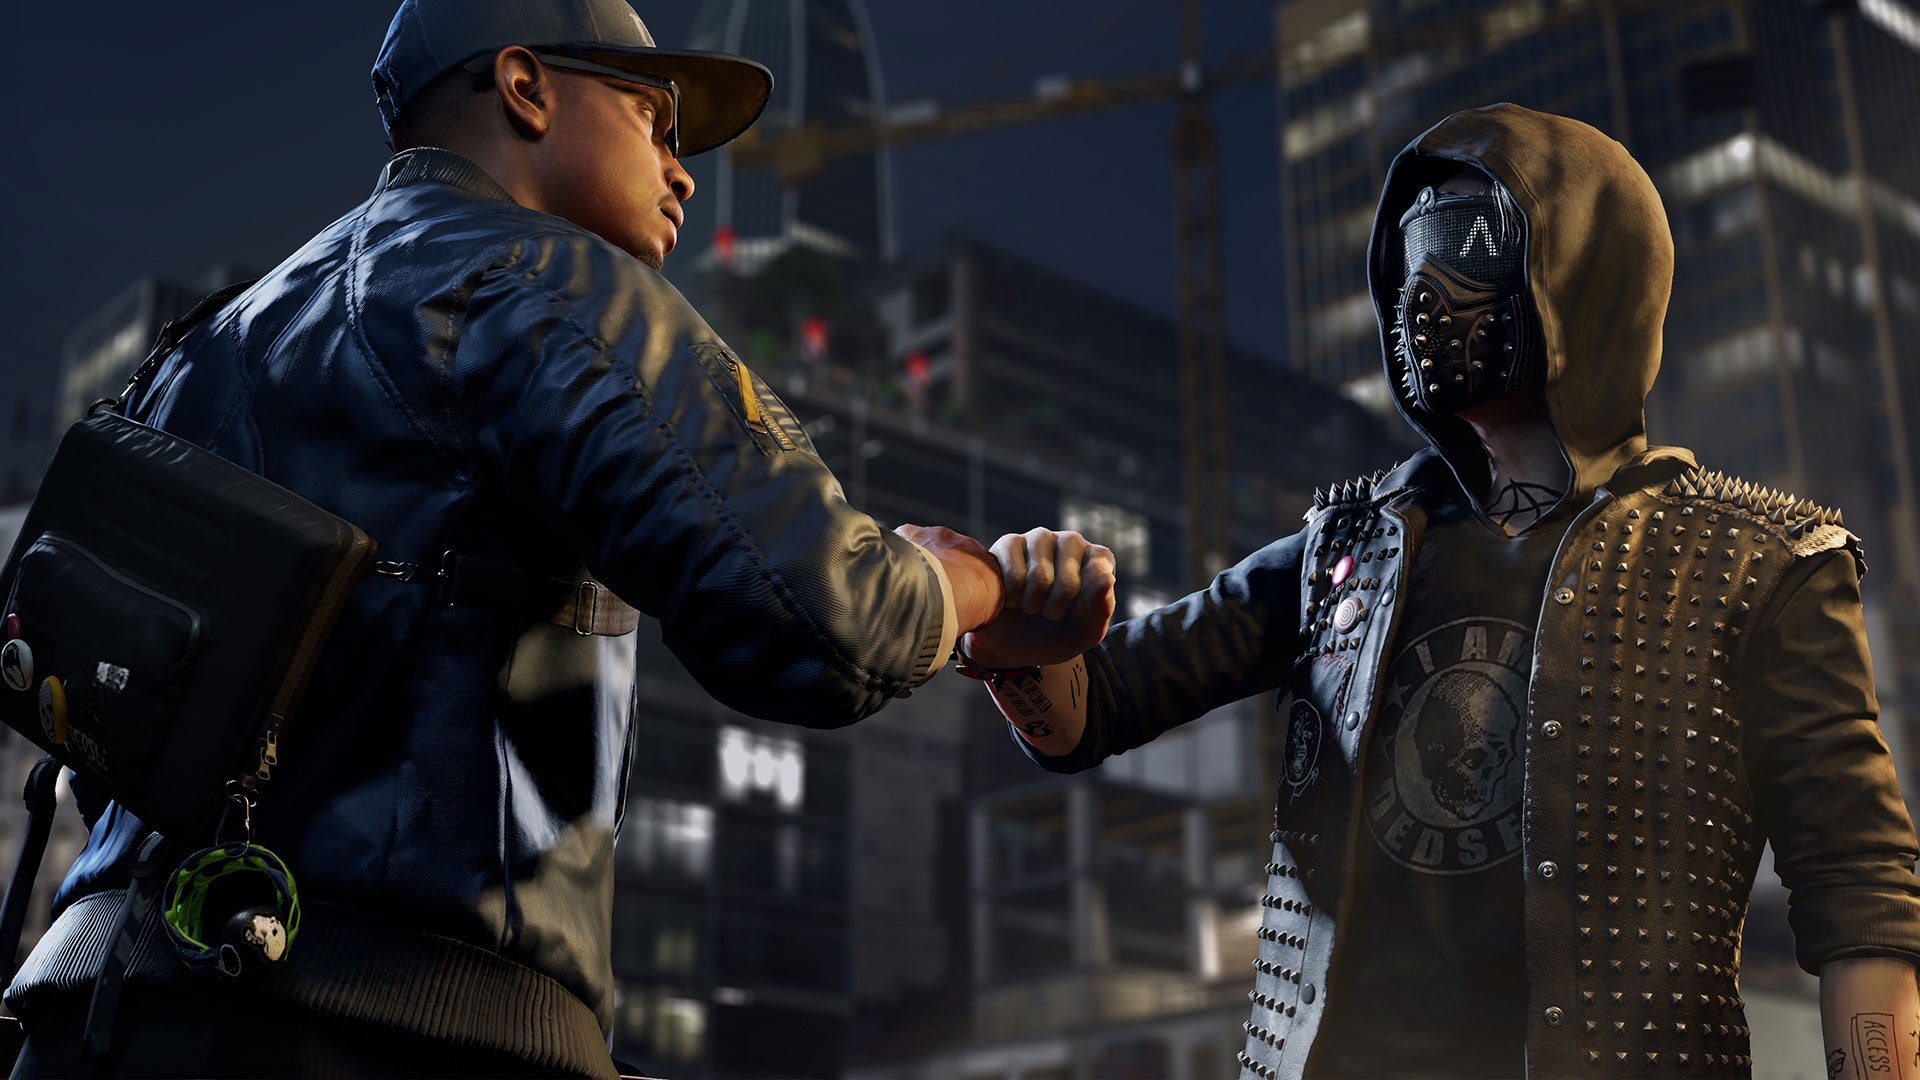 Watch Dogs 2 Marriage Proposal Takes A Tragic Turn